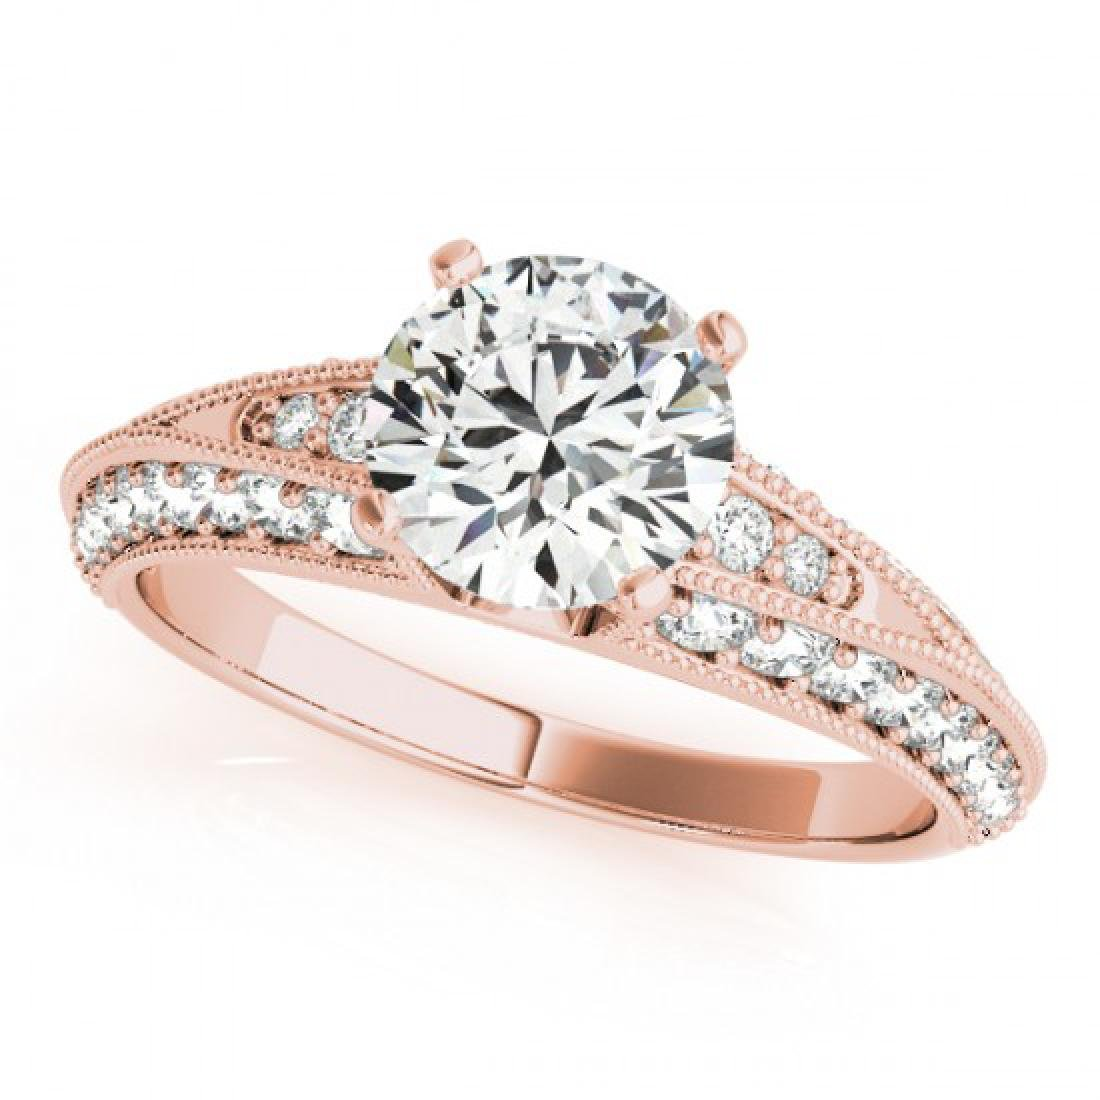 1.58 CTW Certified VS/SI Diamond Solitaire Antique Ring